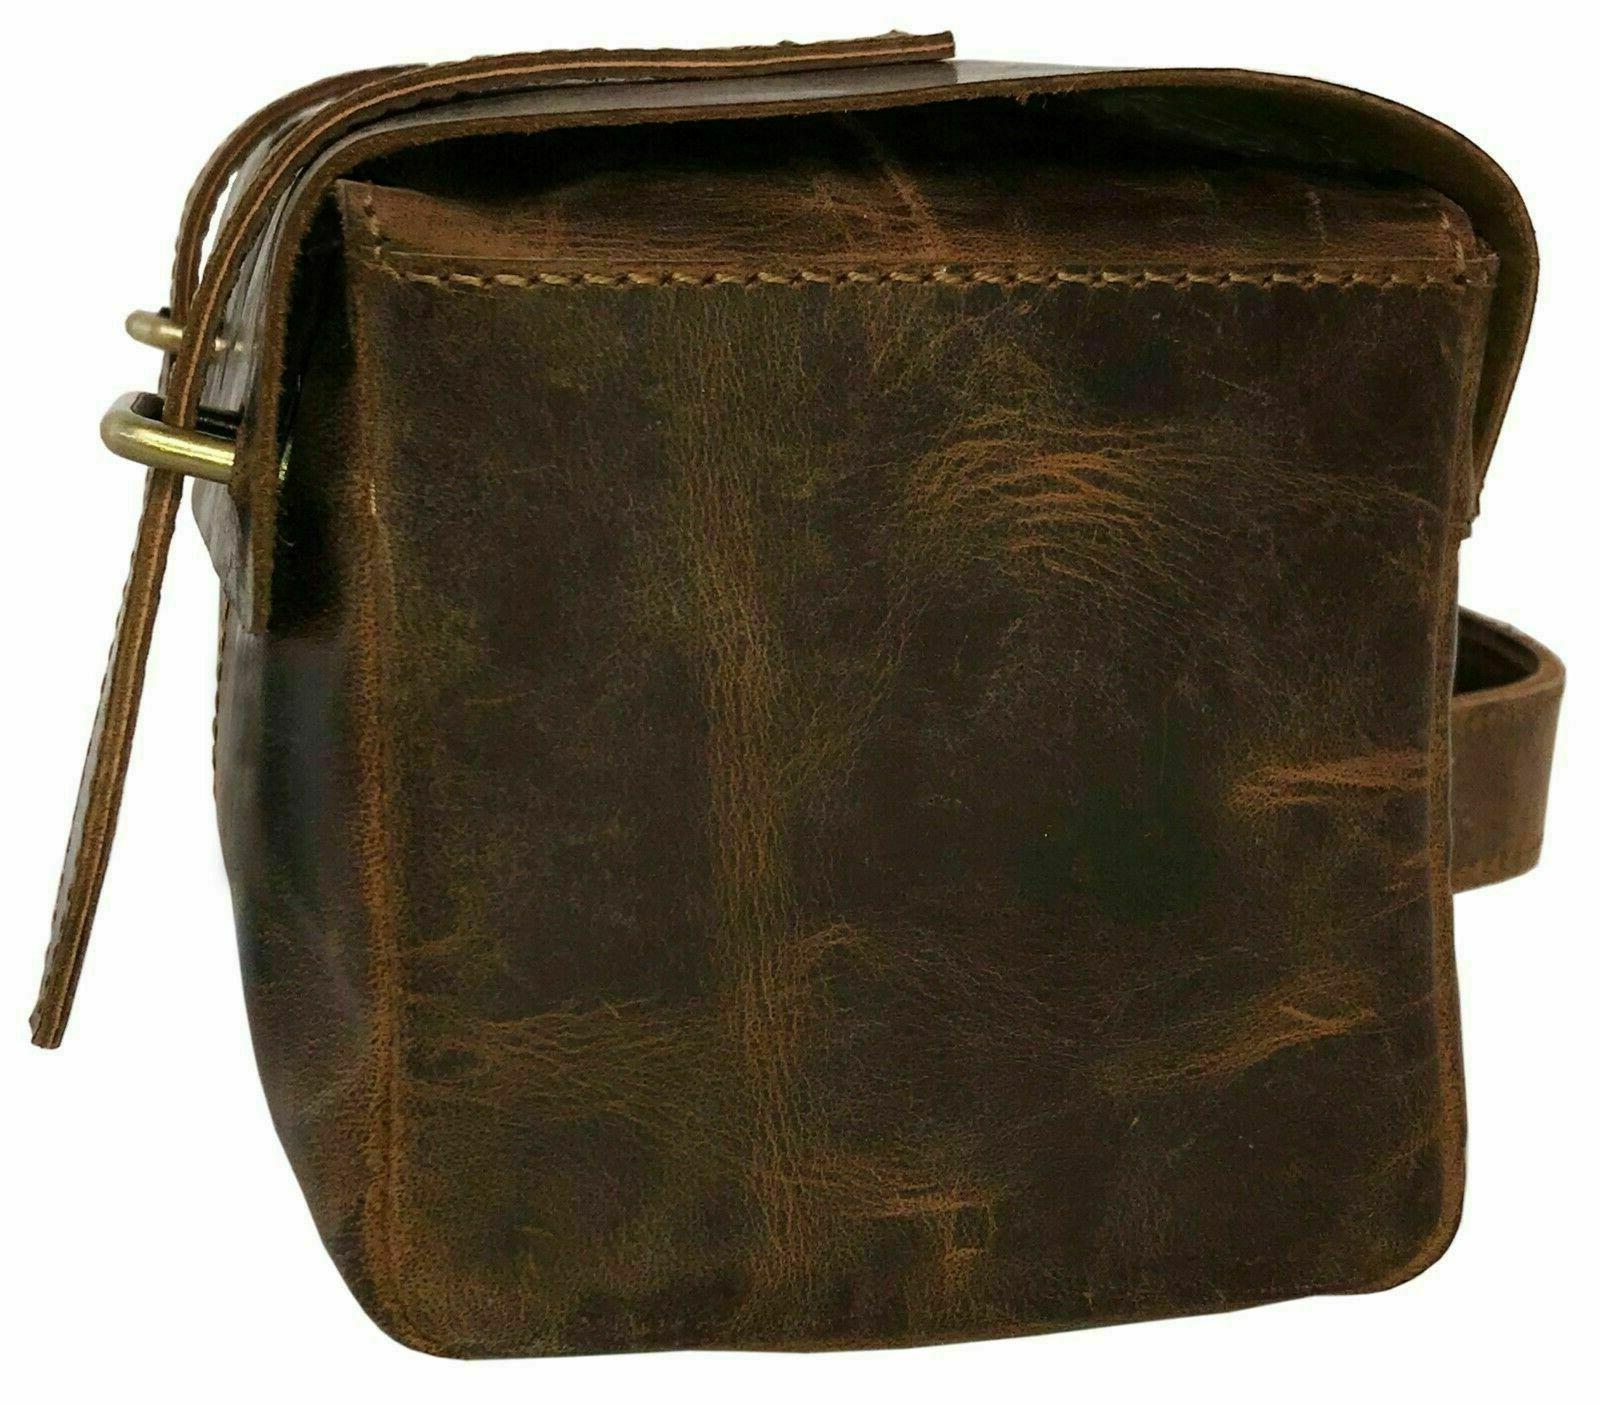 LEATHER Supply Man Accessory Travel